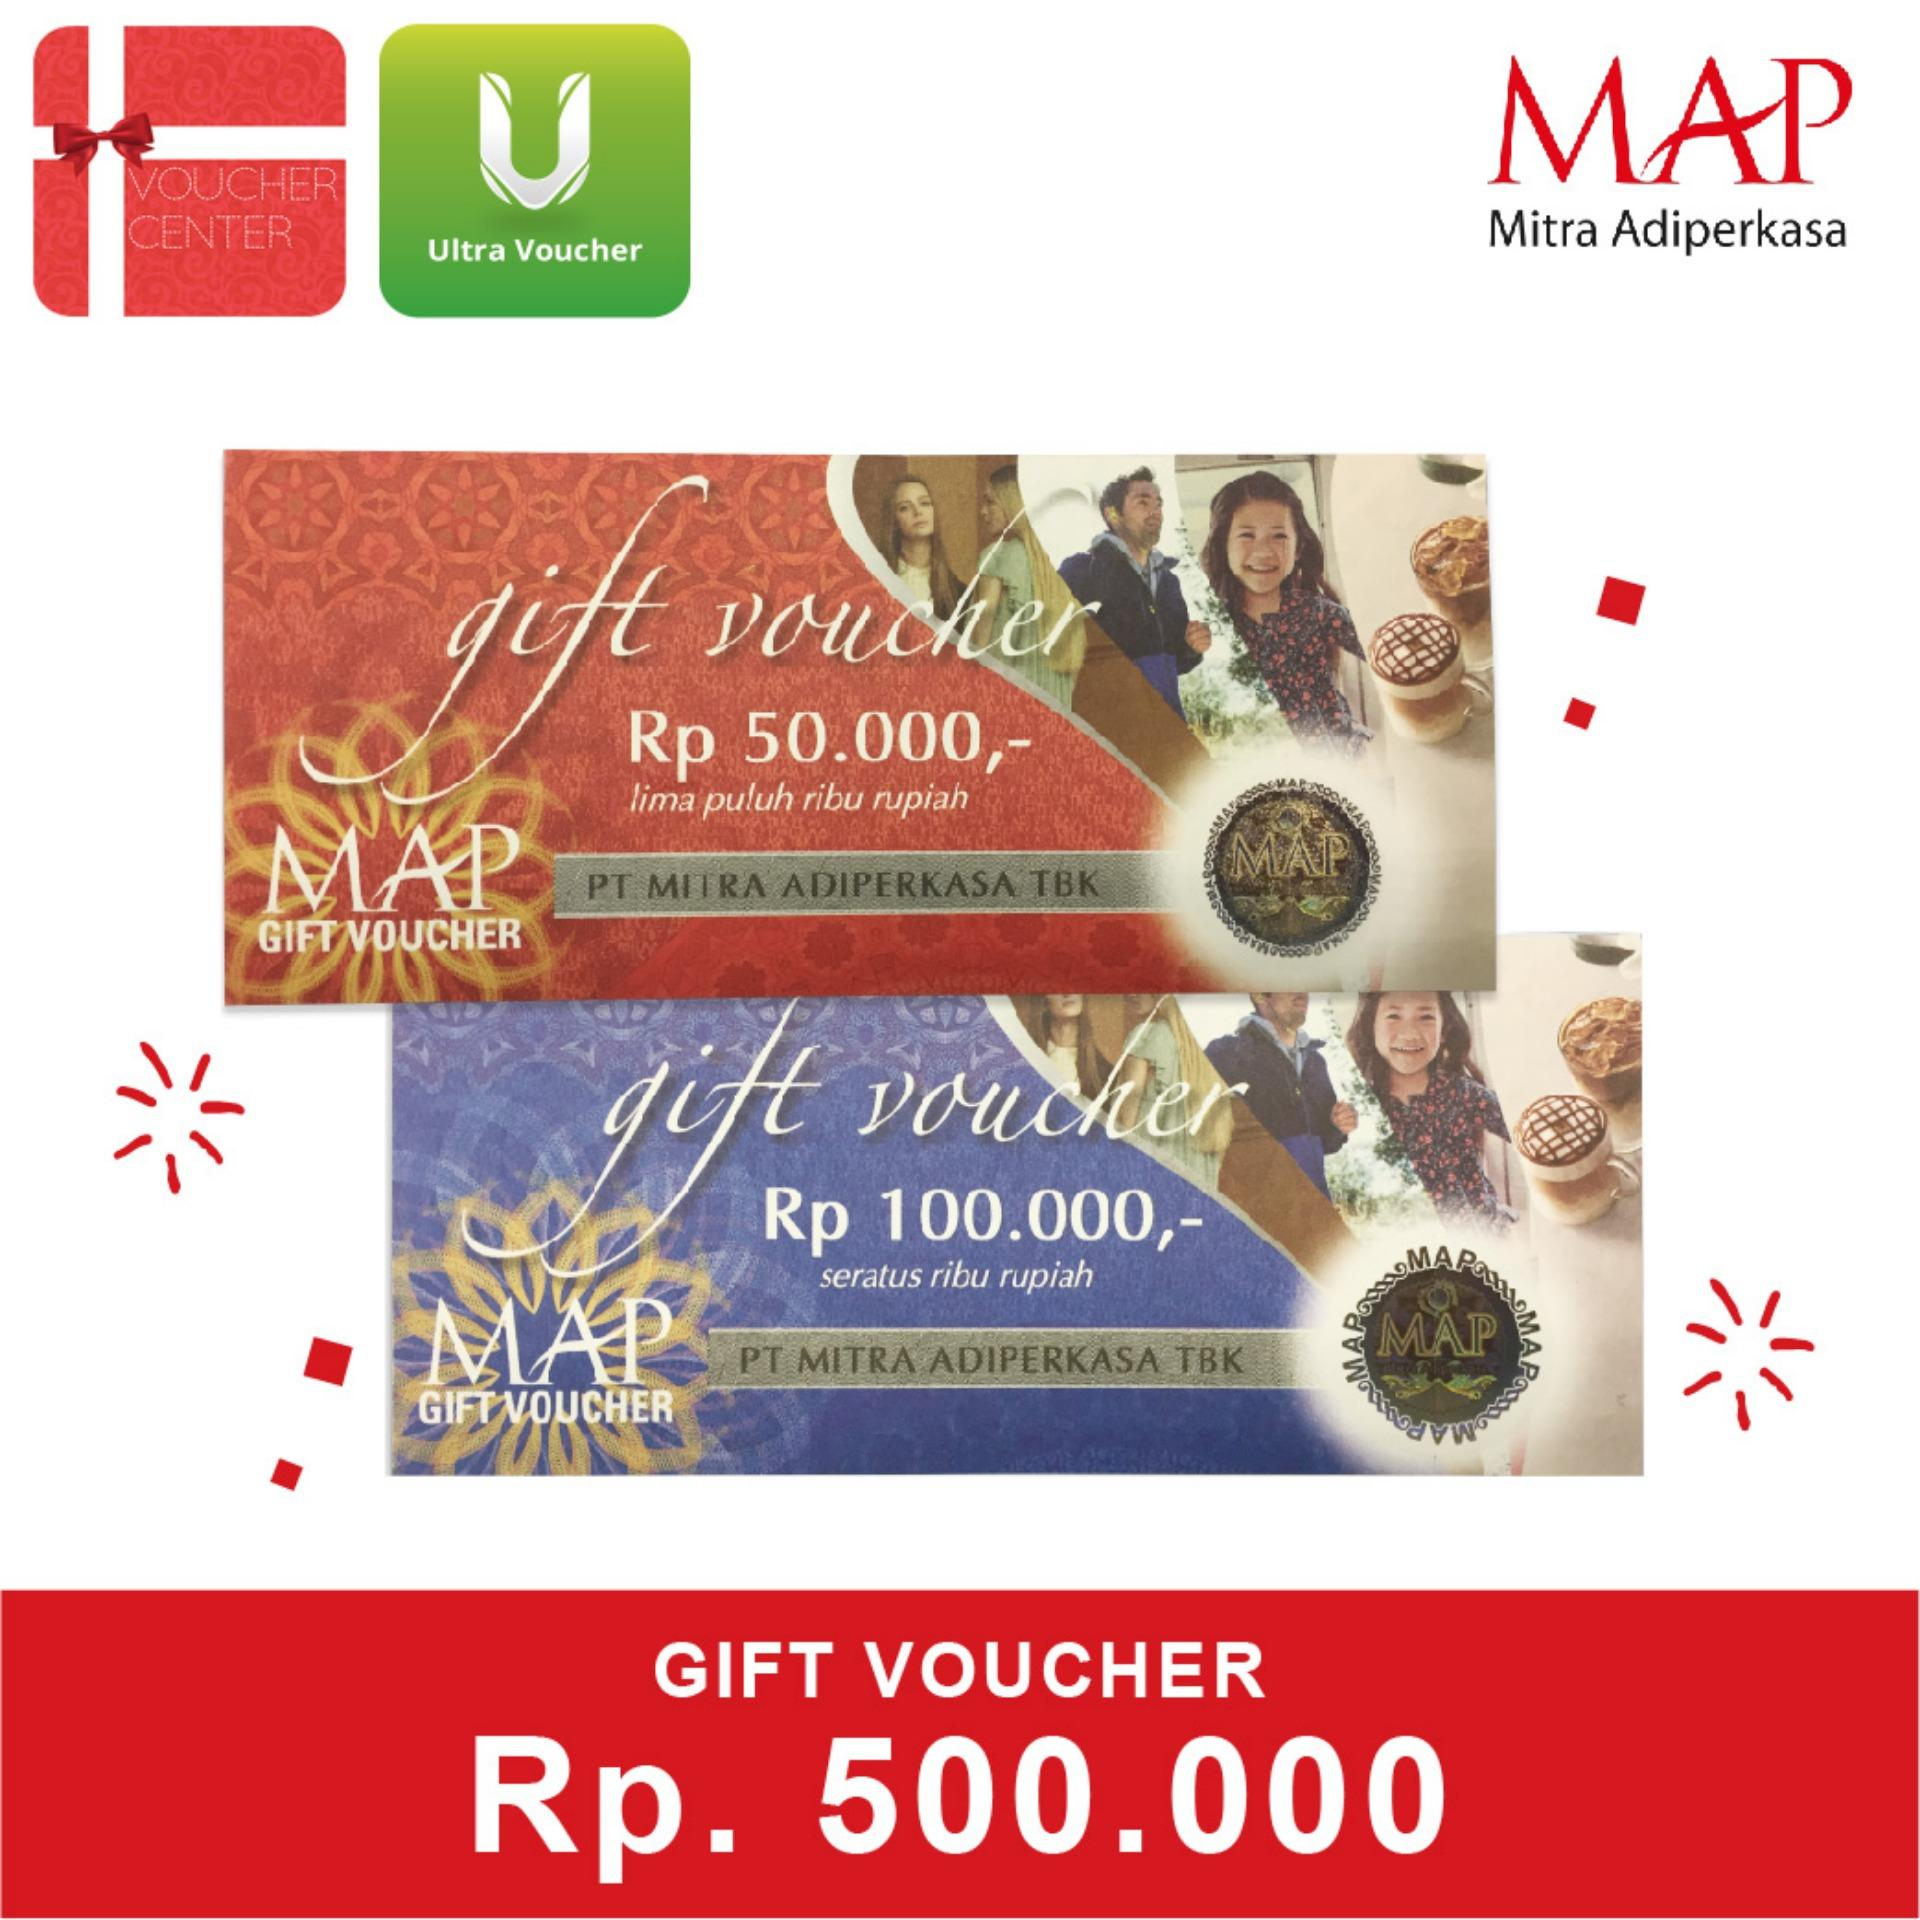 Map Gift Voucher 500.000 By Voucher Center.